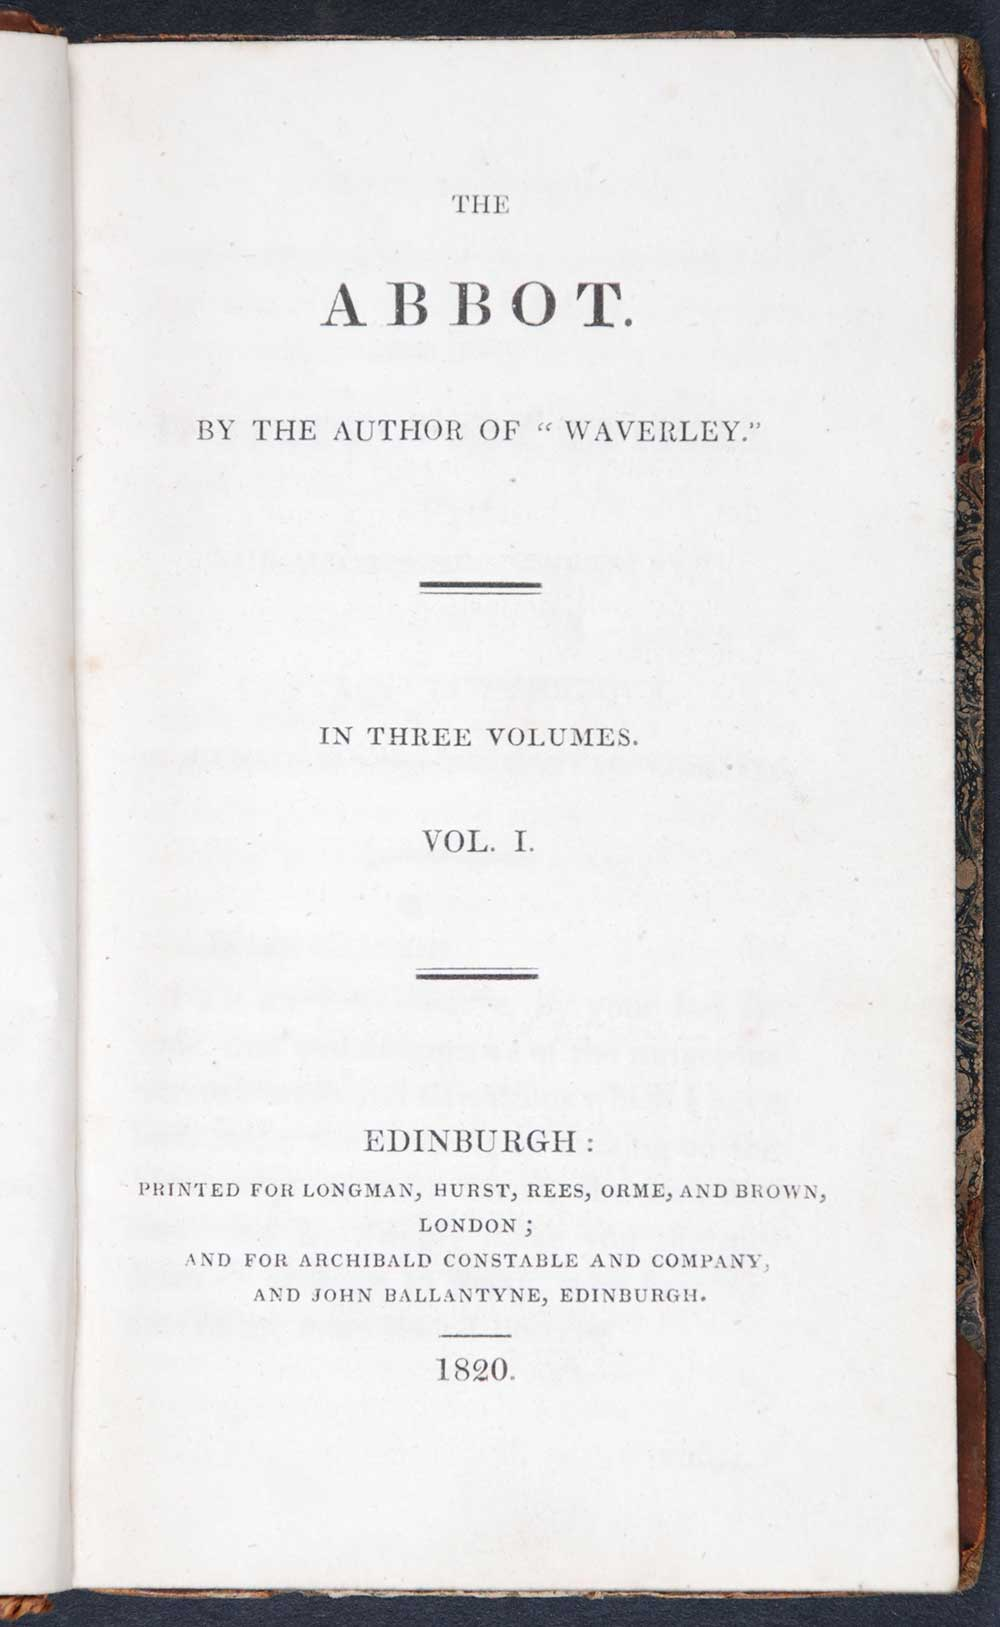 [Sir Walter Scott]. <em>The abbot.</em> [1st edition]. Edinburgh: Printed for Longman, Hurst, Rees, Orme, and Brown, London; and for Archibald Constable and Company, and John Ballantyne, Edinburgh, 1820. Three volumes; Vol. 1 displayed.